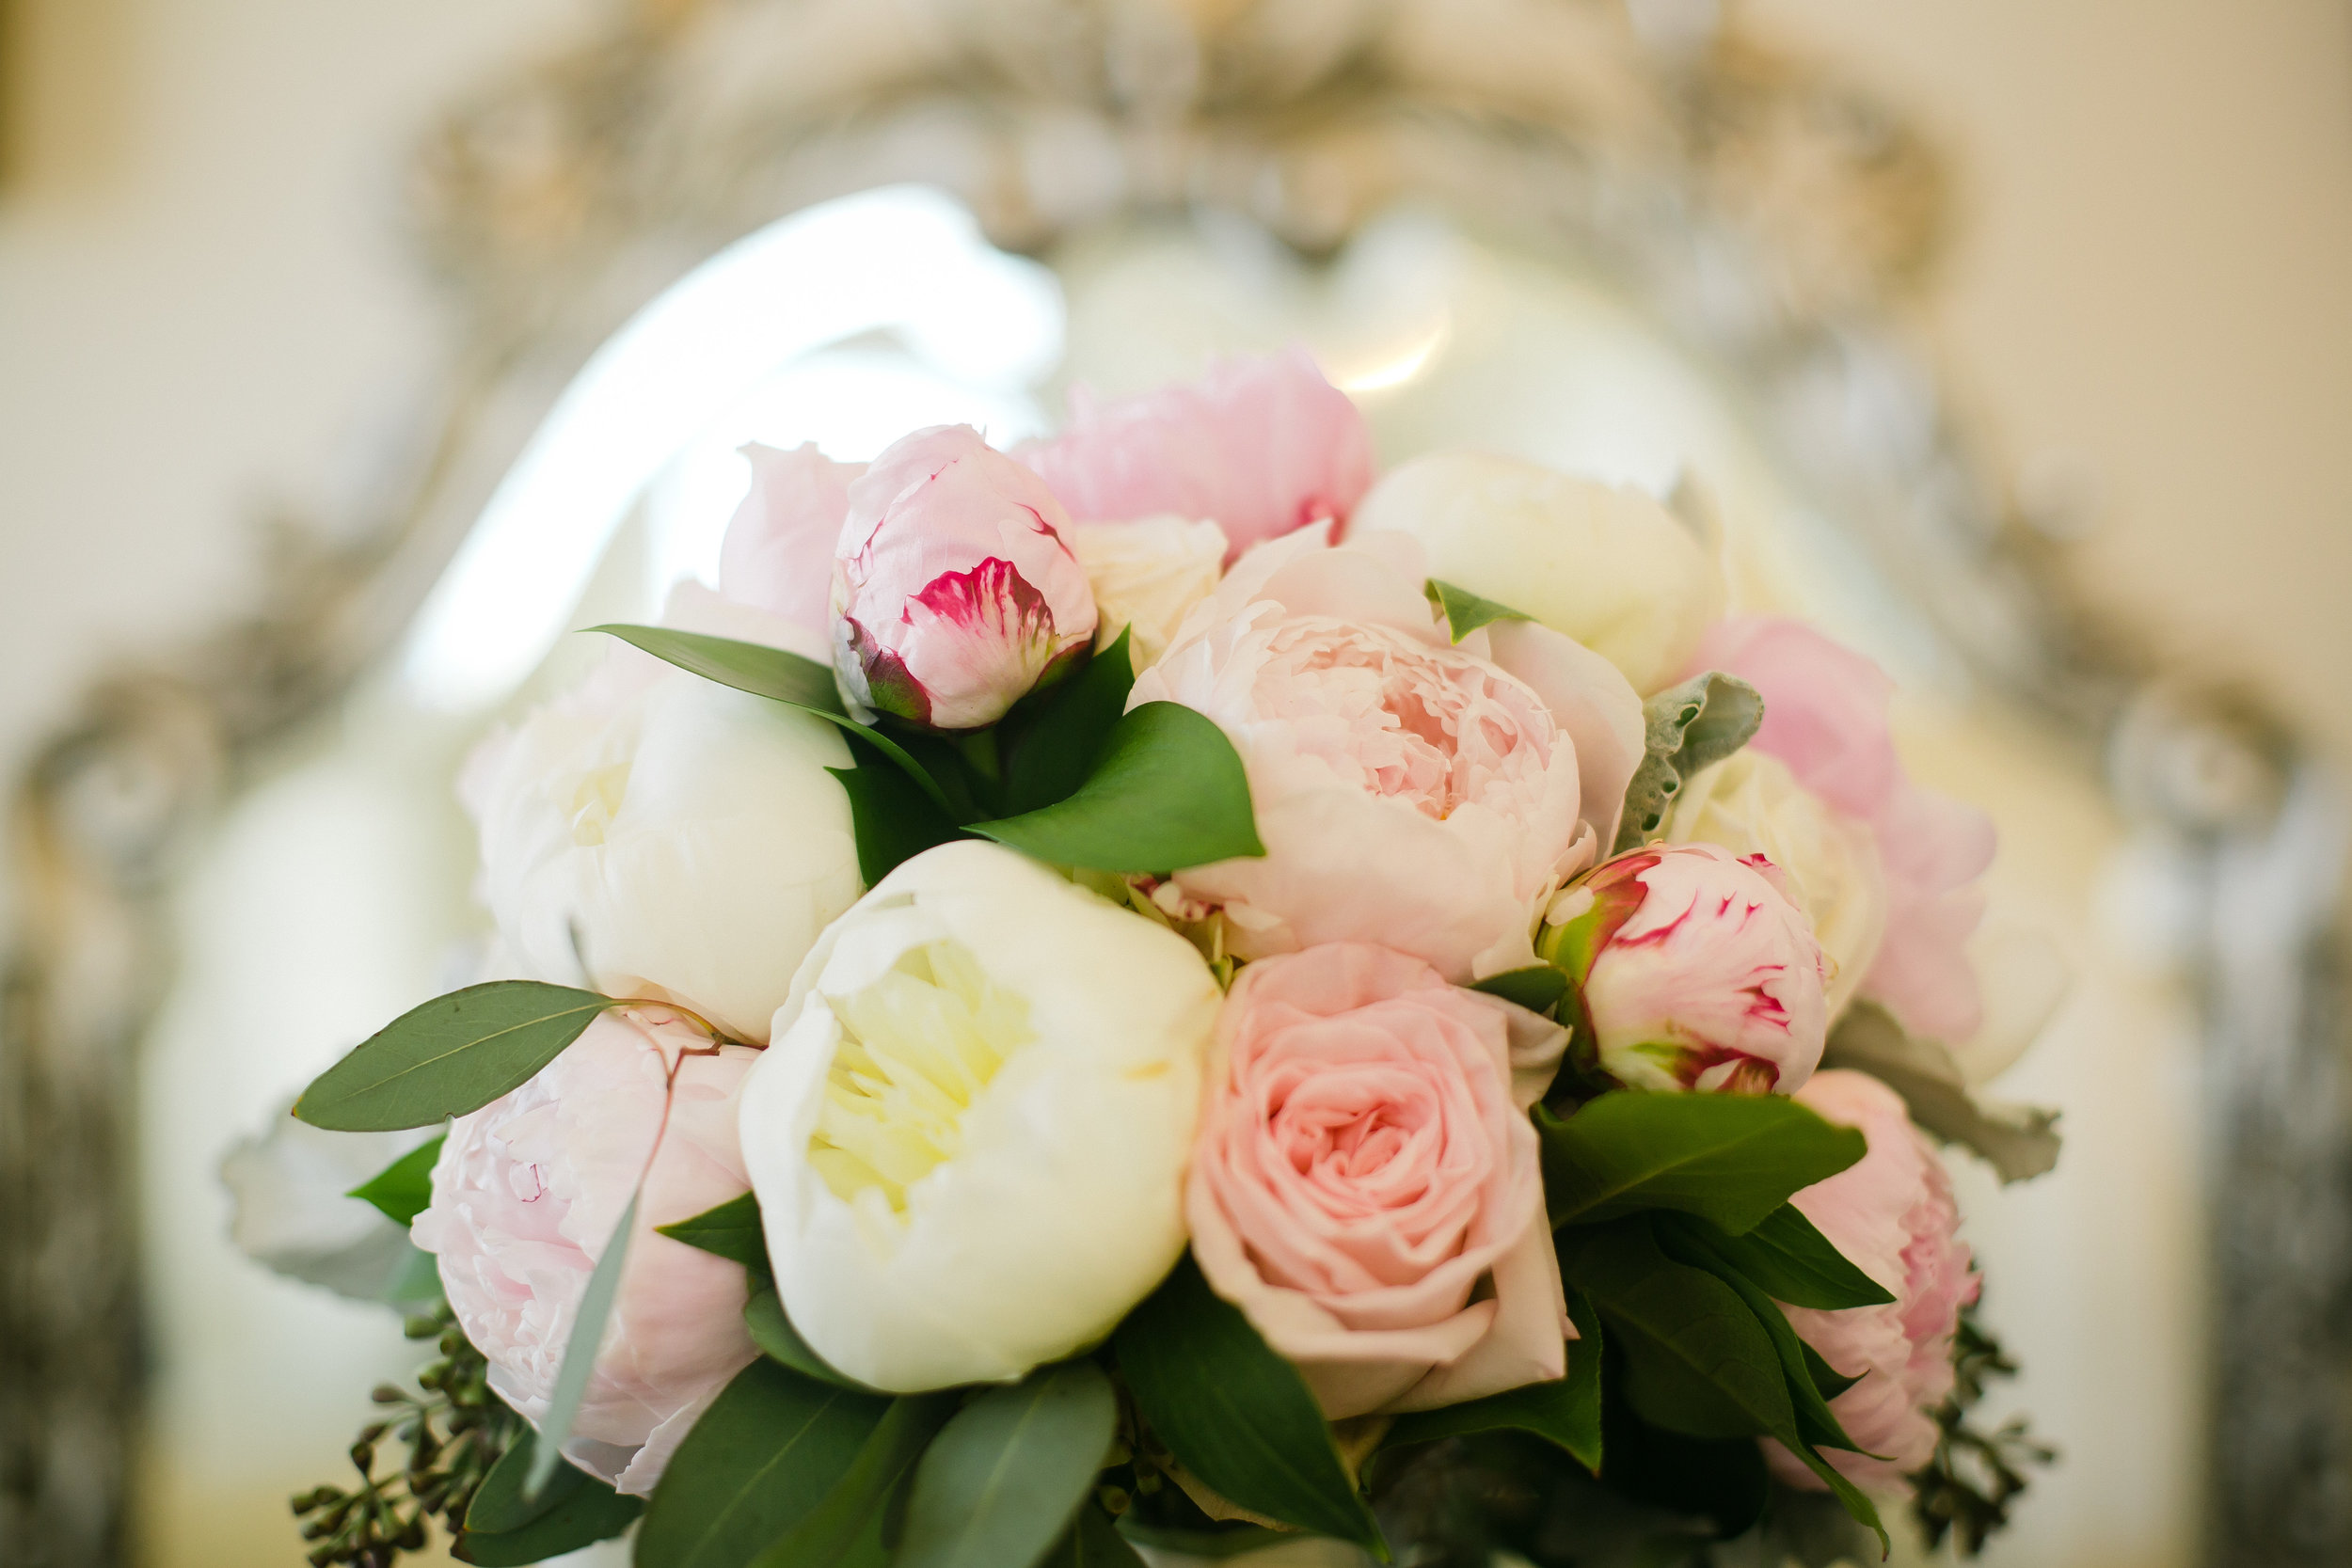 Bridal bouquet with pink and white roses and peonies for Monastery Event Center wedding in Cincinnati.  Florals by Yellow Canary www.yellowcanaryonline.com